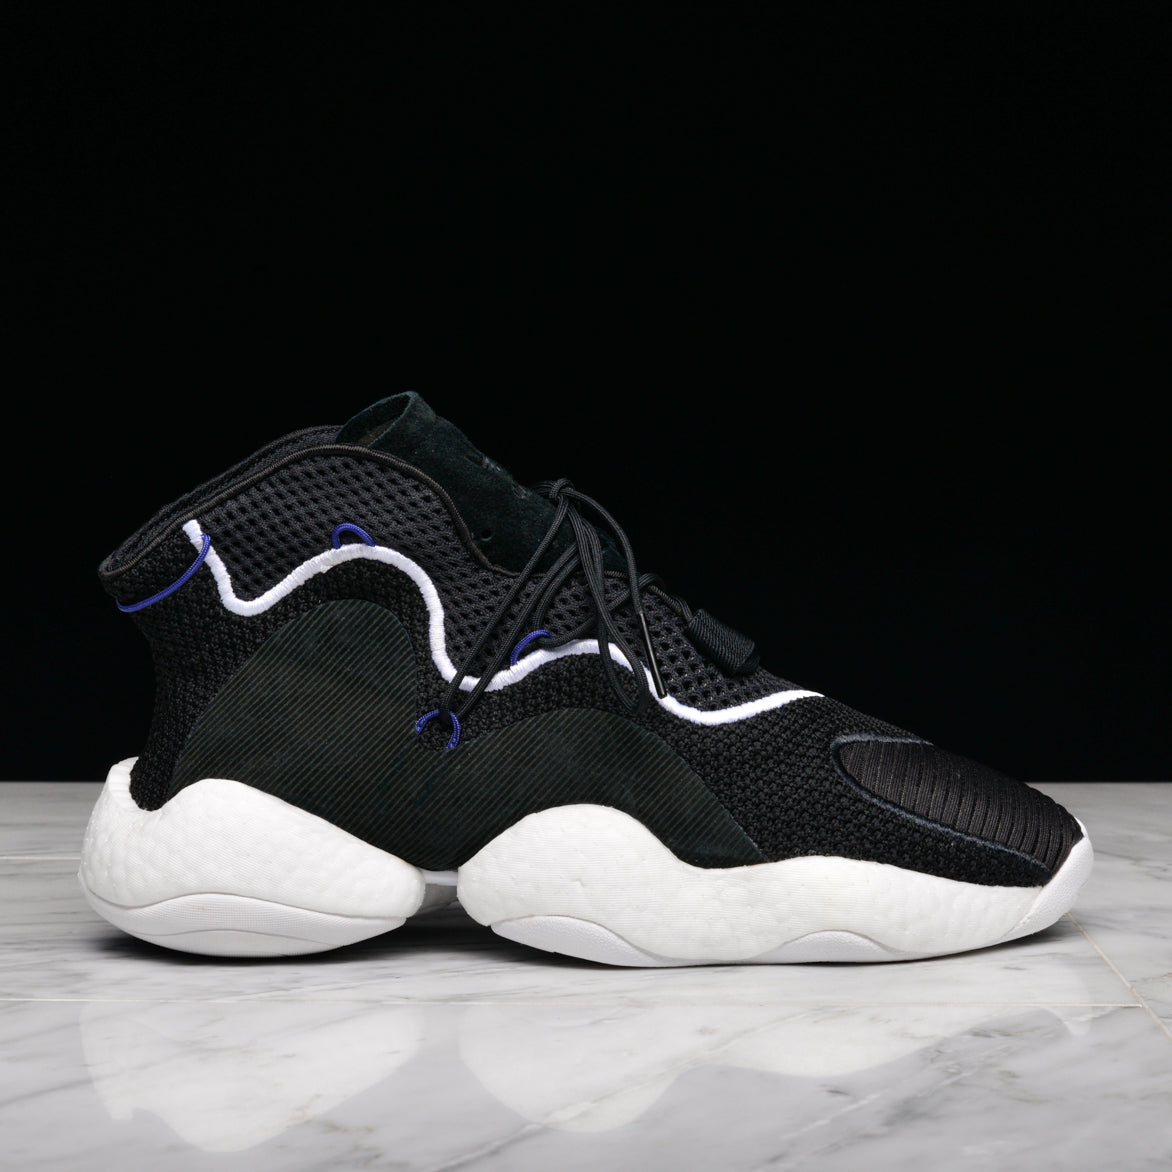 CRAZY BYW LVL 1 - BLACK   WHITE  b8424319a